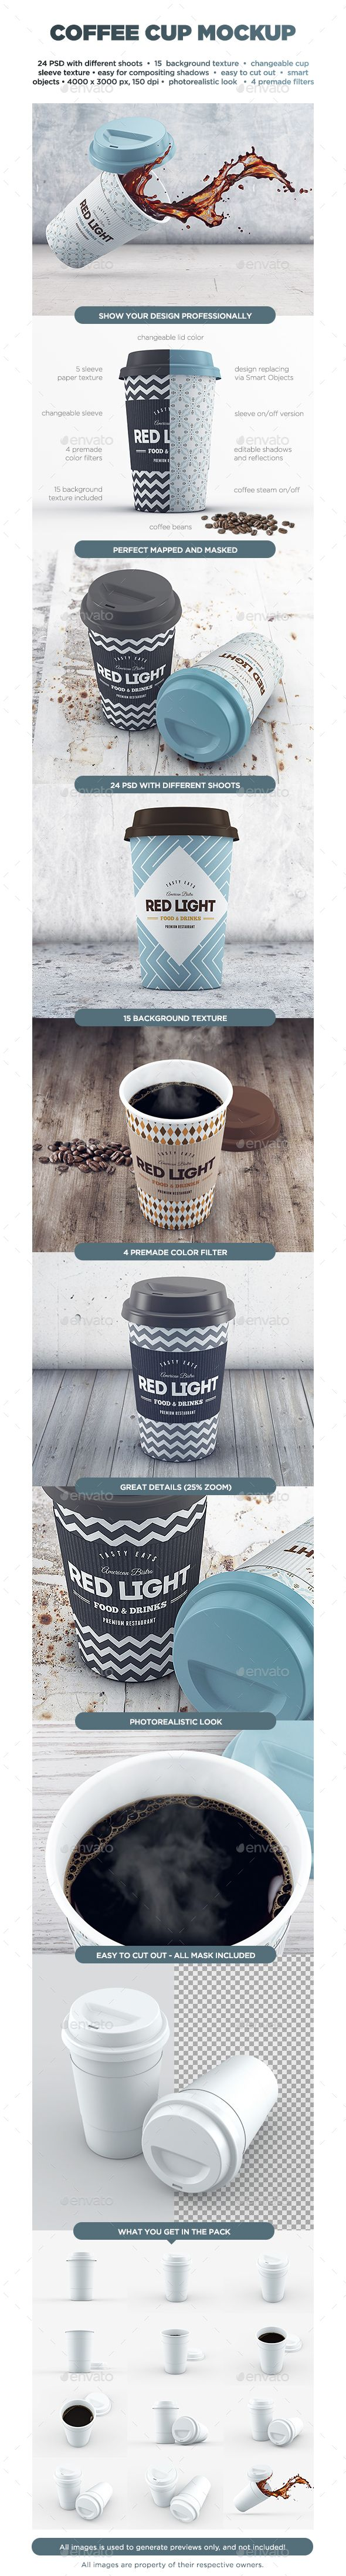 Coffee Cup MockUp #design Download: http://graphicriver.net/item/coffee-cup-mockup/13081348?ref=ksioks